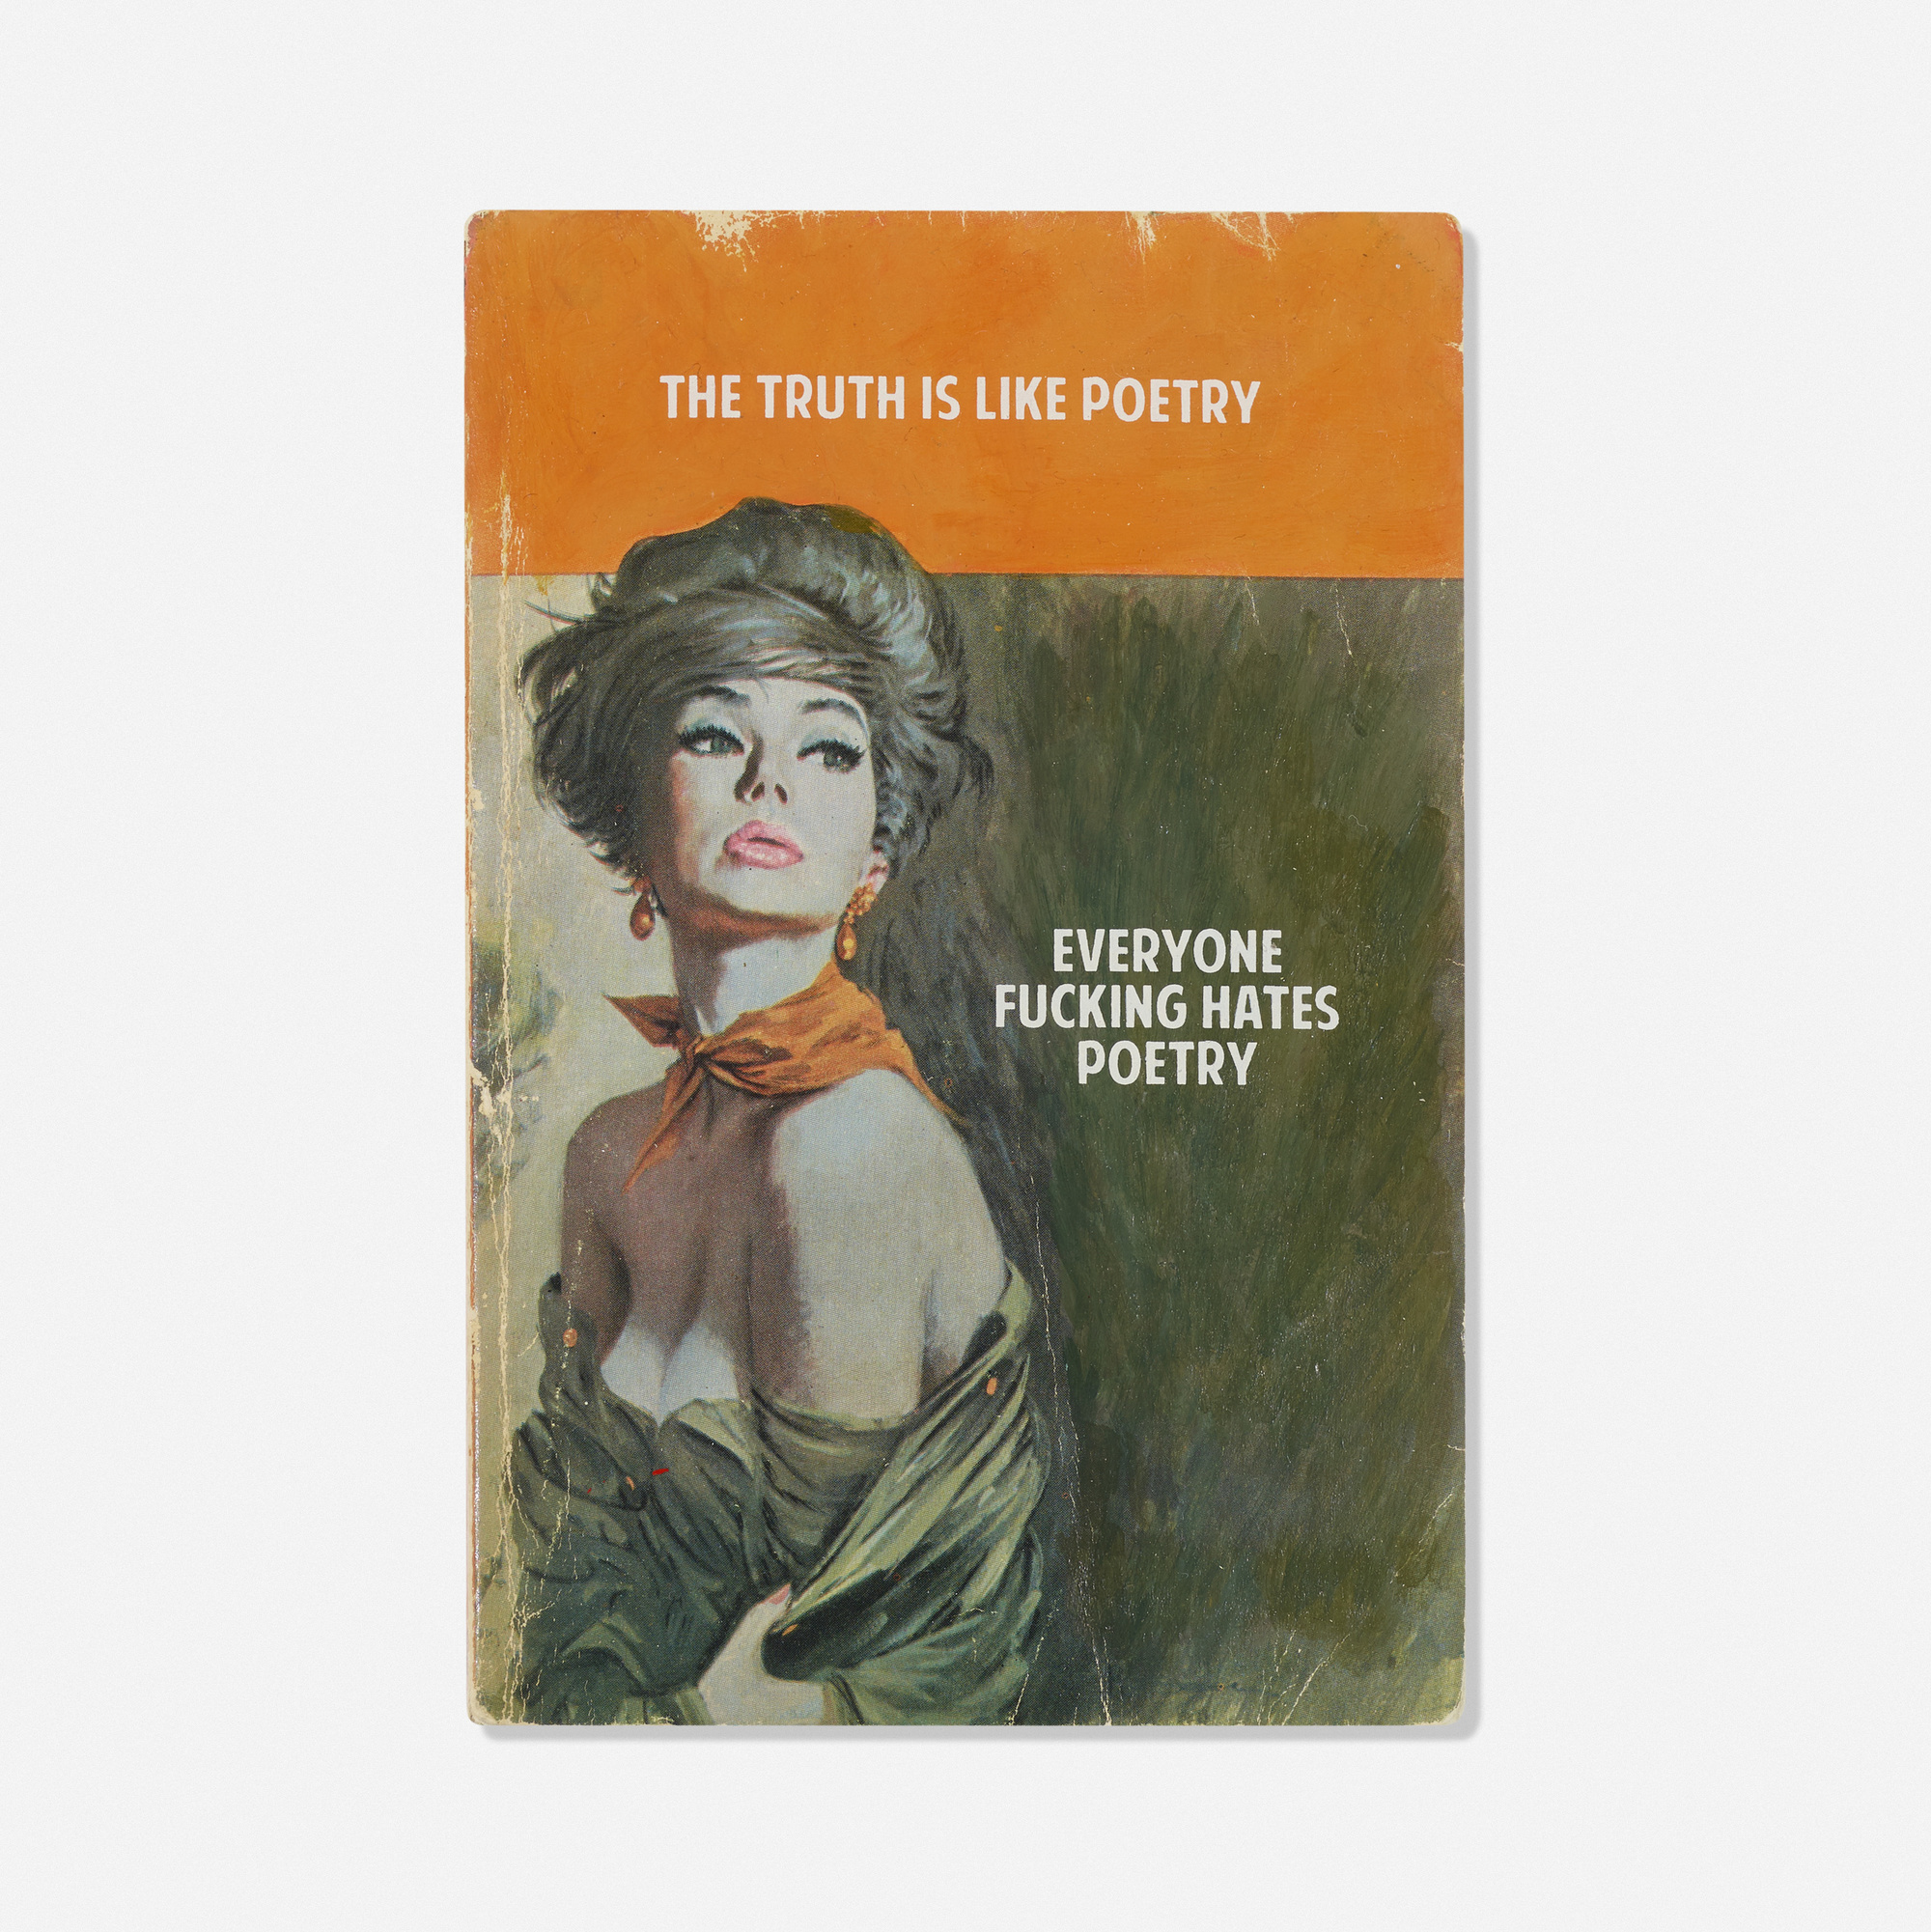 129_1_art_design_july_2019_the_connor_brothers_the_truth_is_like_poetry__wright_auction.jpg